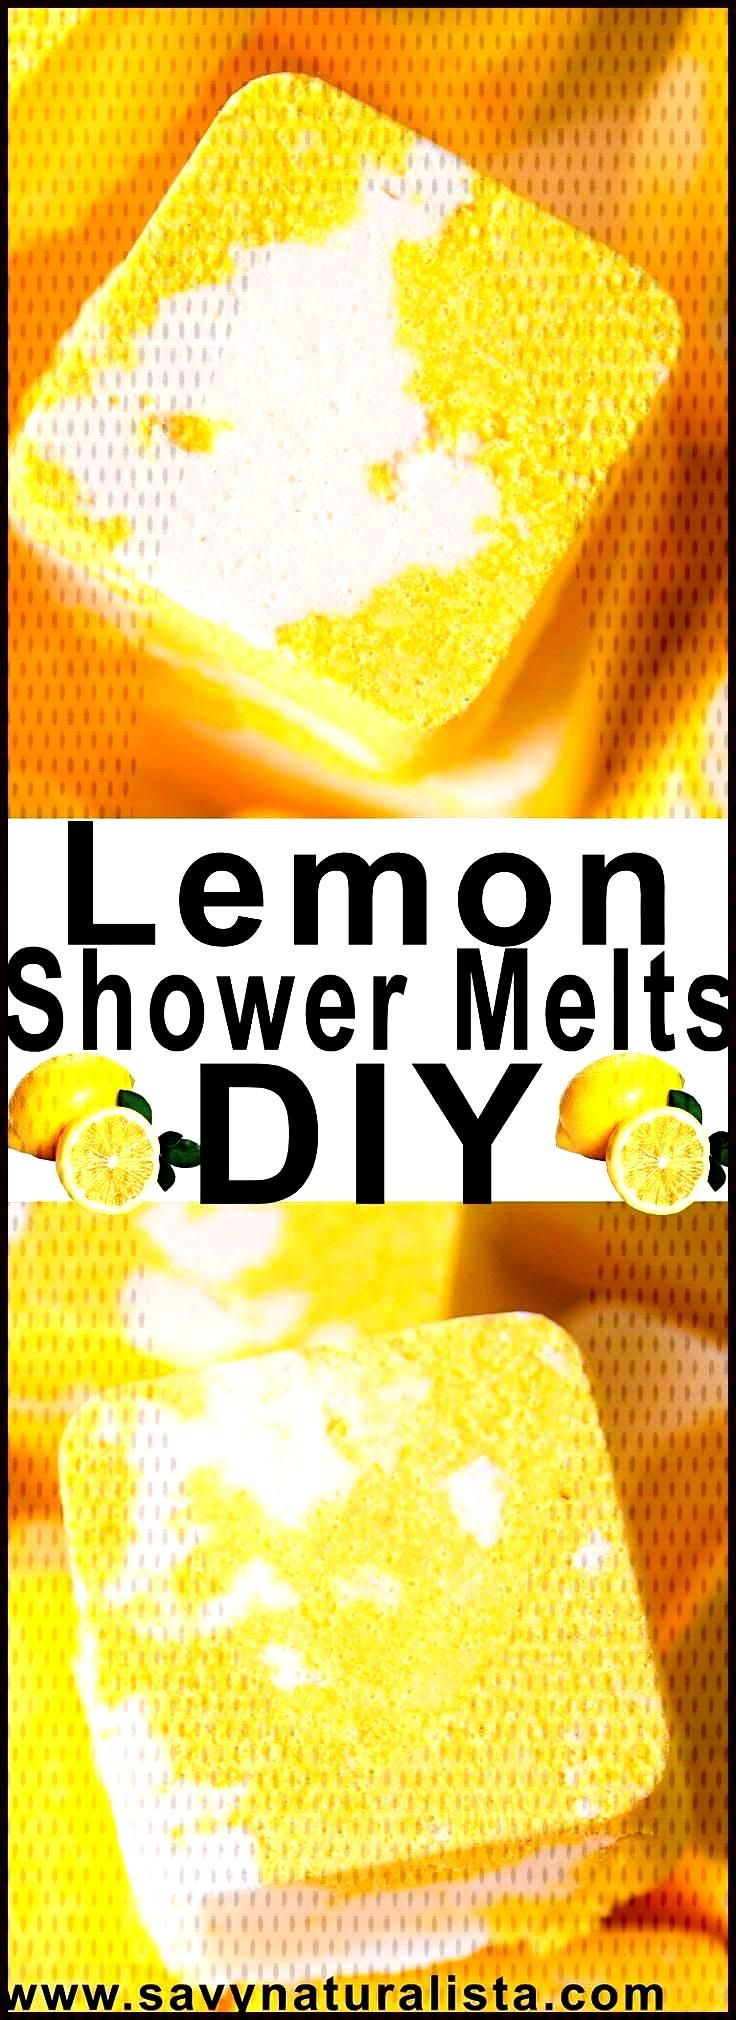 Lemon Shower Melts Savvy Naturalista Make even the speediest shower feel indulgent with these easy